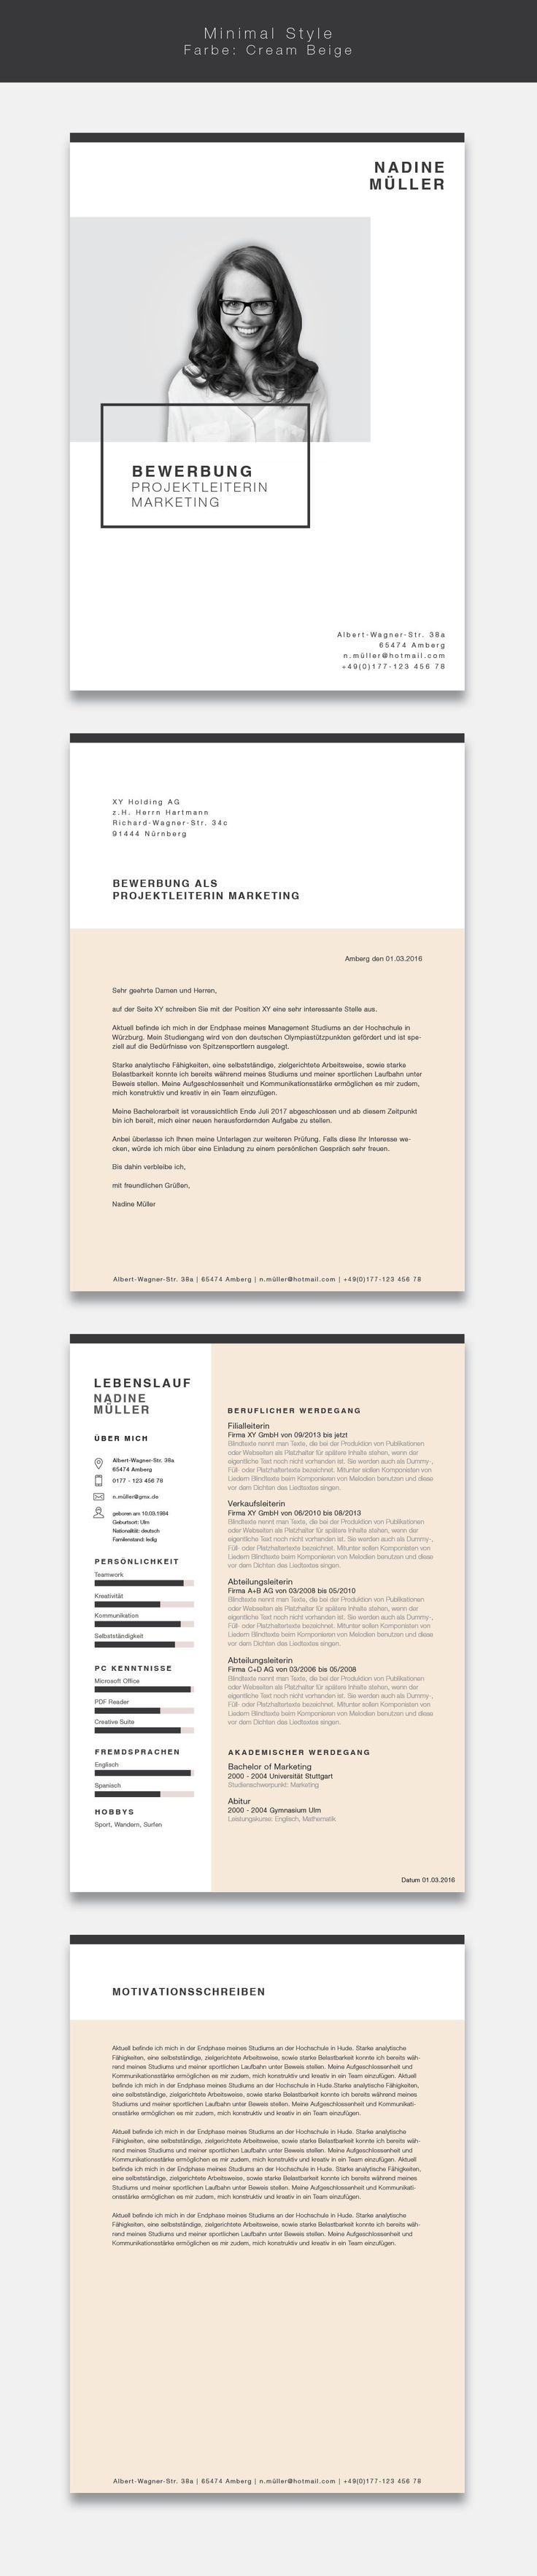 61 best Bewerbung images on Pinterest | Resume design, Career and ...